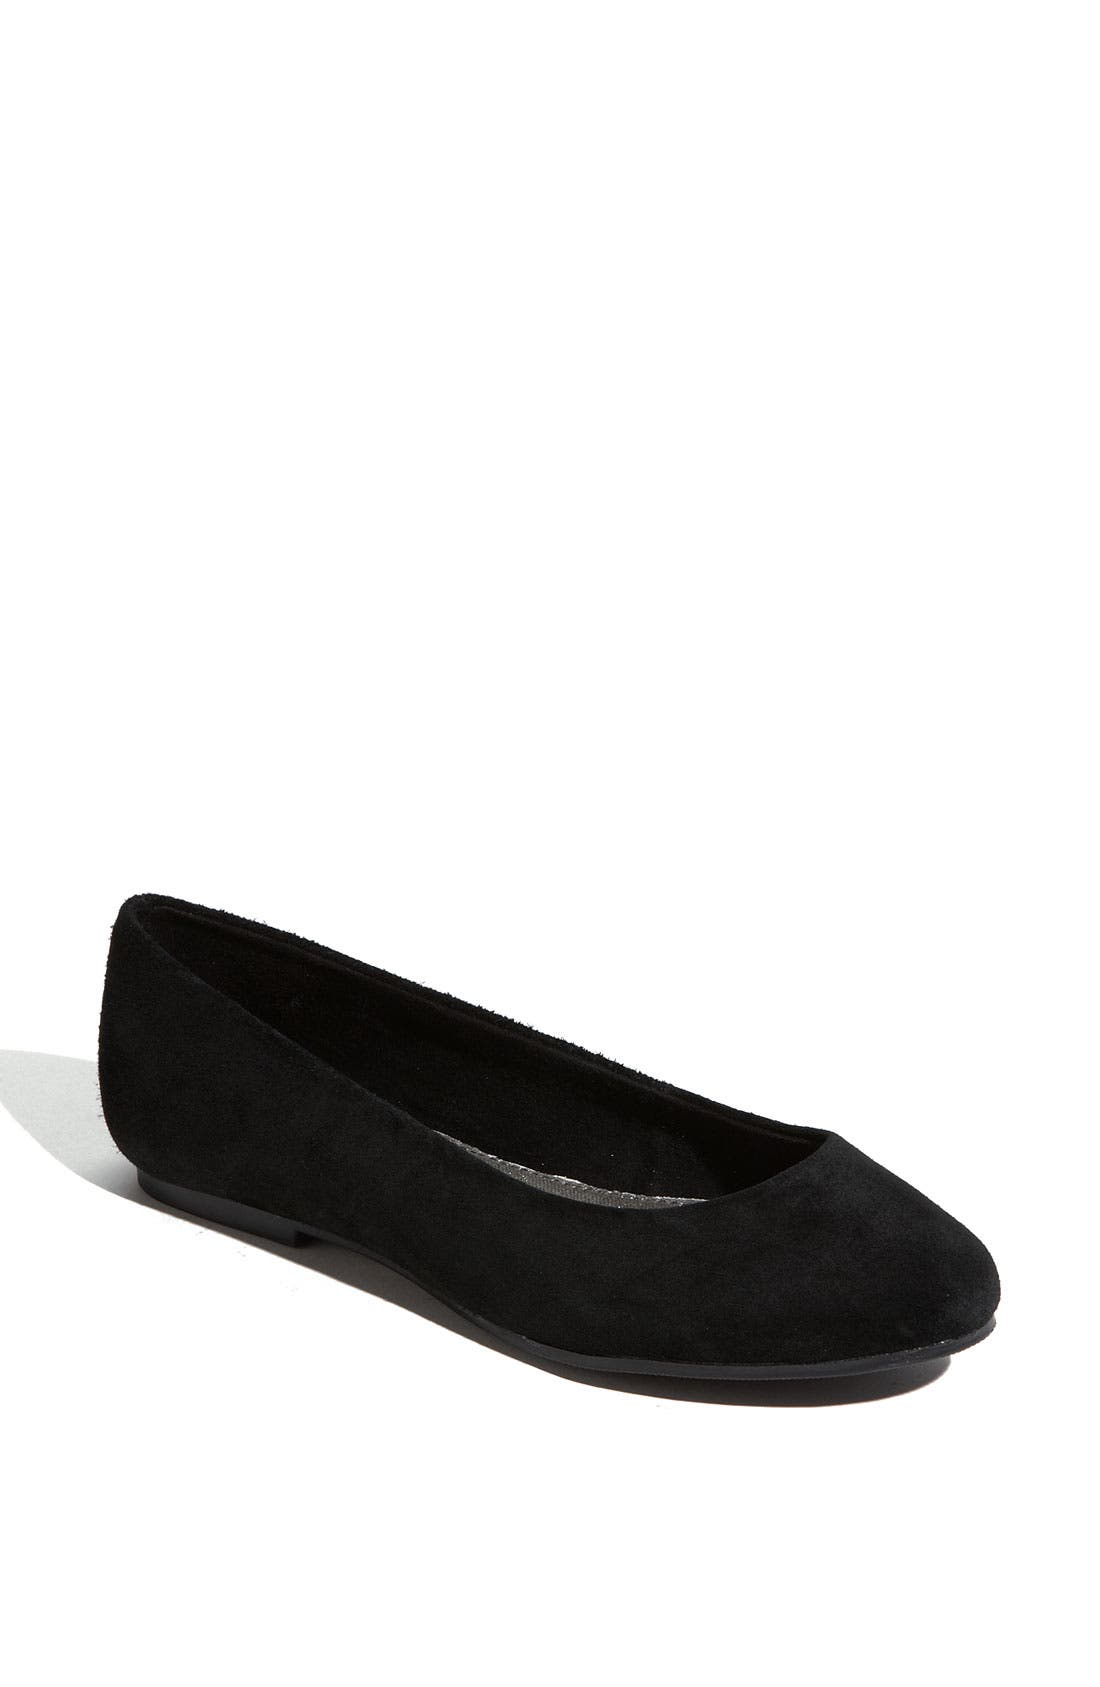 Main Image - BC Footwear 'Limousine' Suede Flat